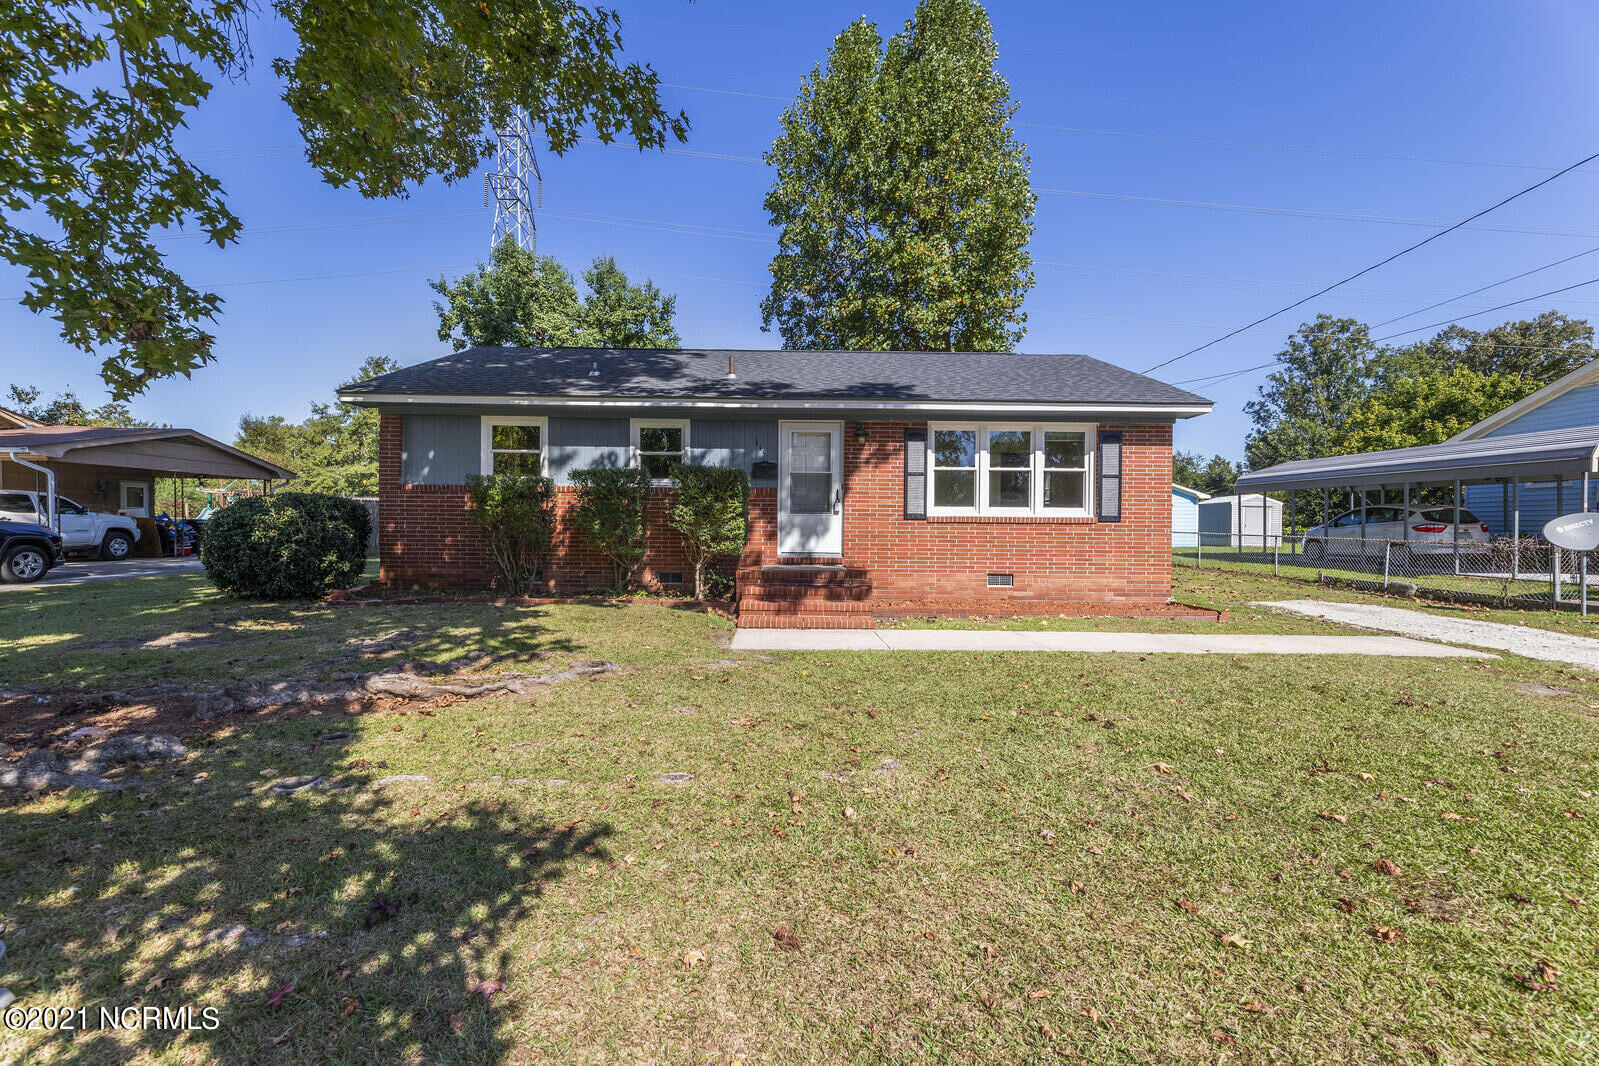 This beautiful remodeled 3 bedroom and 1 1/2 bath home is located in the heart of Jacksonville. This home features a newly remodeled kitchen with all new appliances, beautiful hardwood flooring in the living room and bedrooms, and a new roof in 2016! This home is a must see!